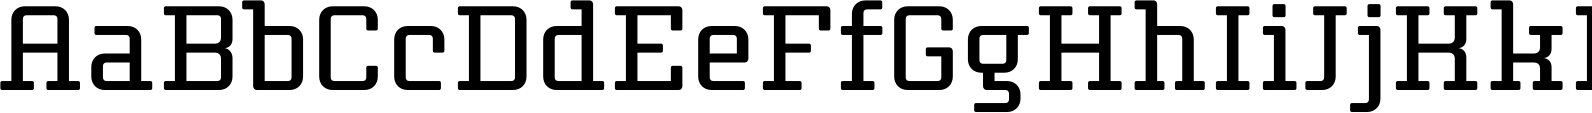 Thousands Regular Font